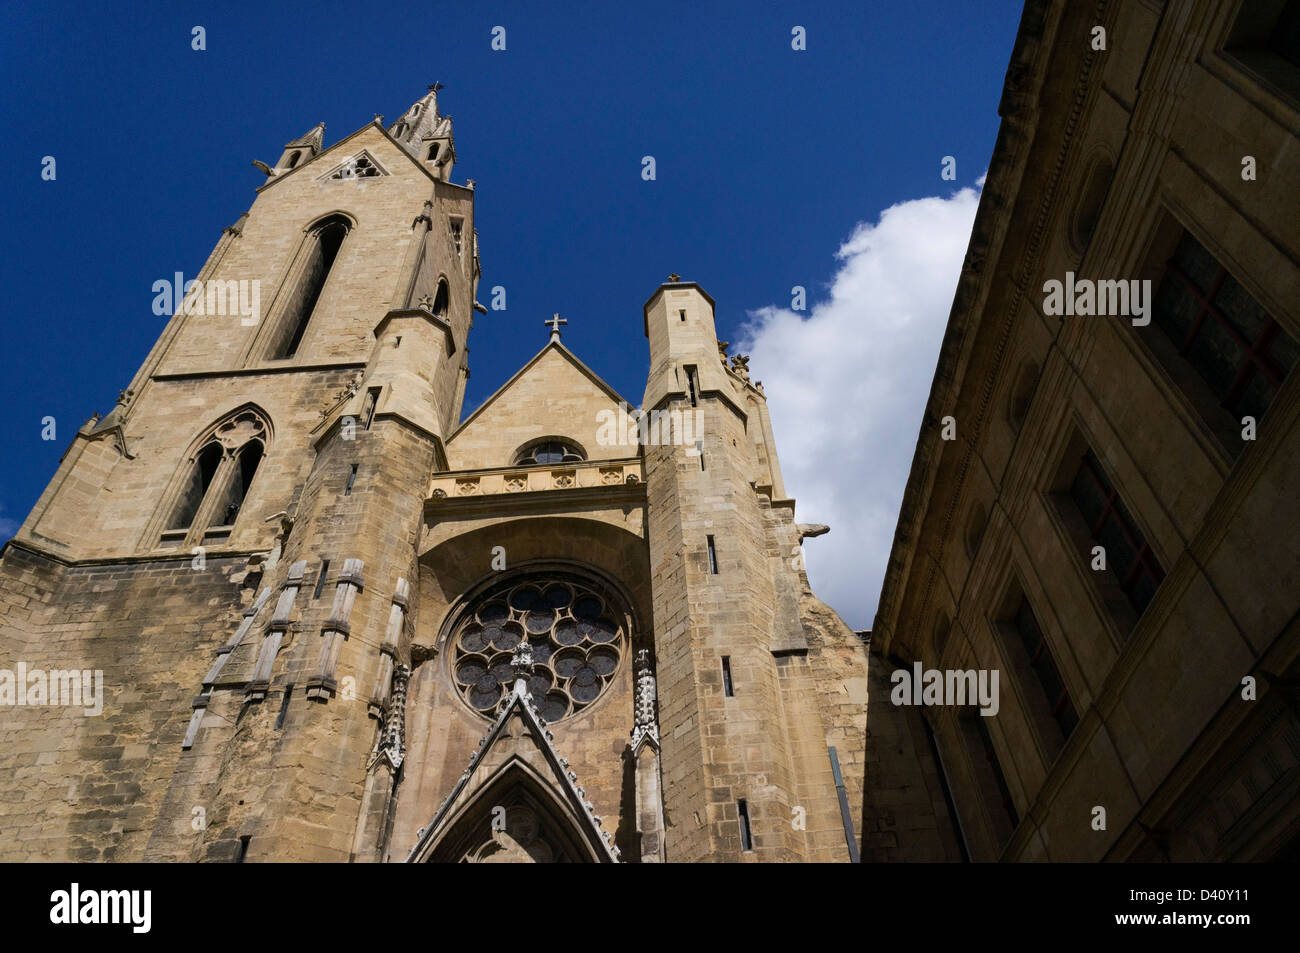 Saint-Jean-de-Malte church, Aix-en-Provence, France - Stock Image